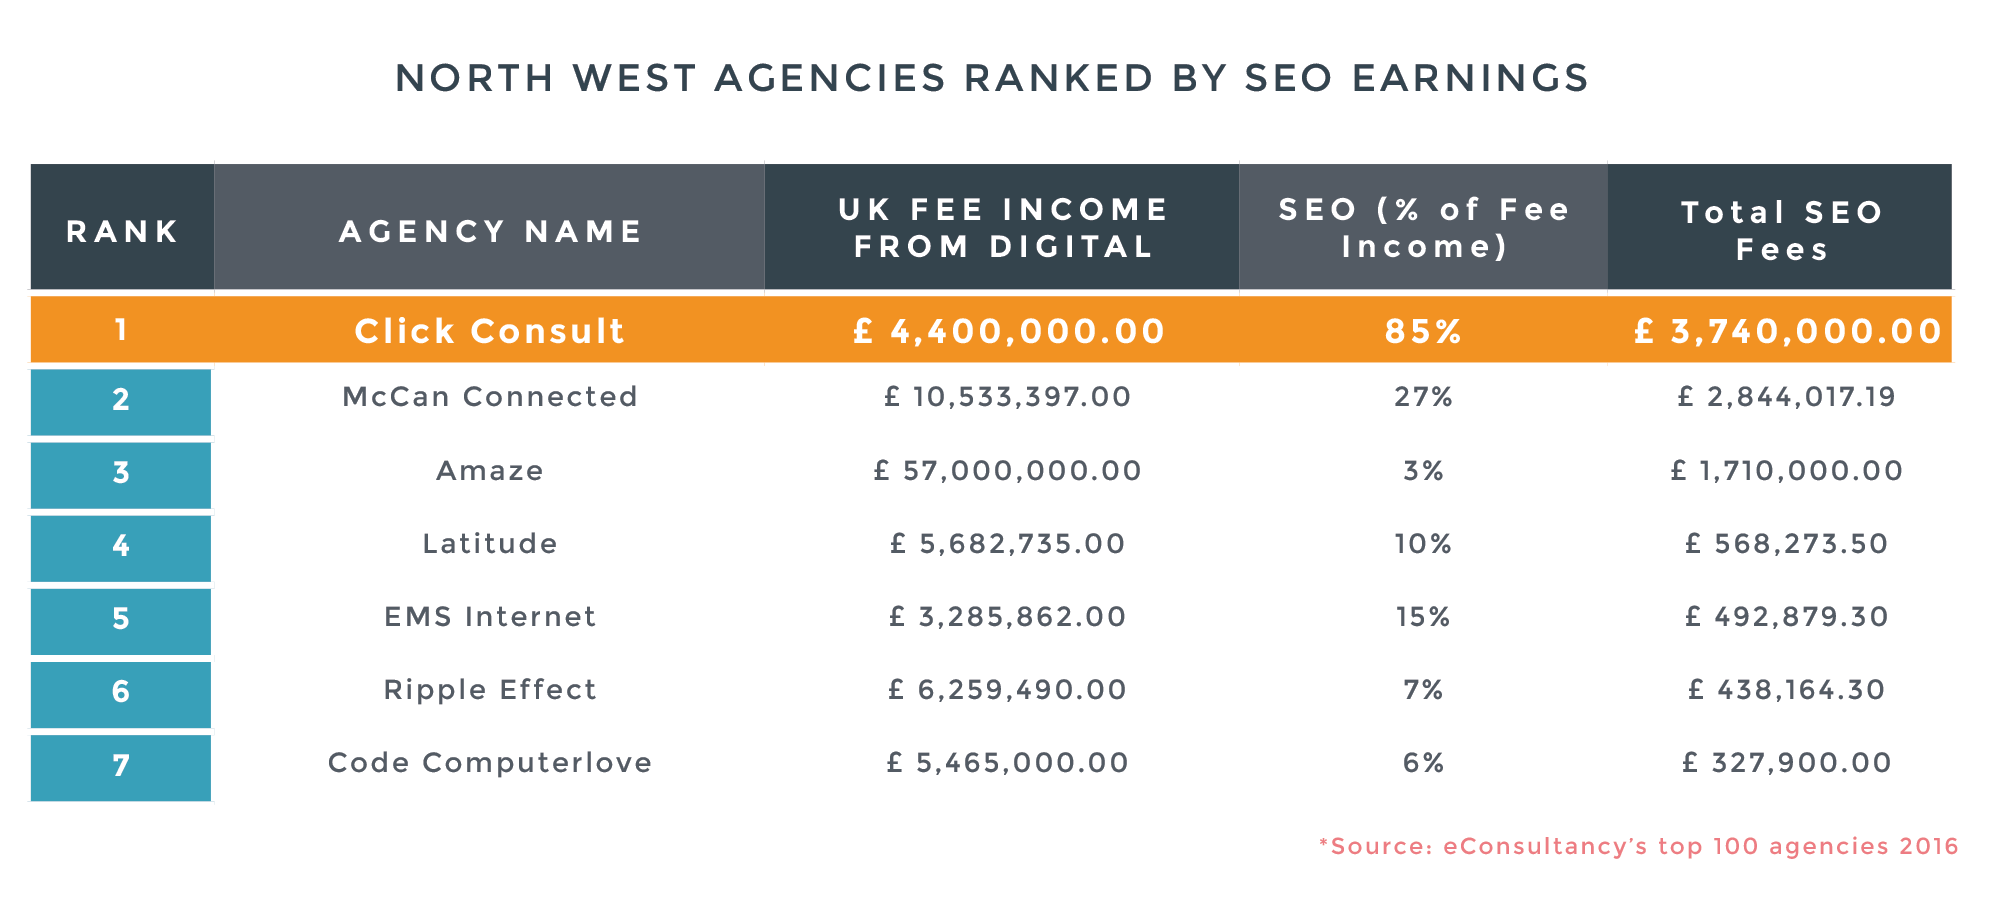 North West Agencies Ranking